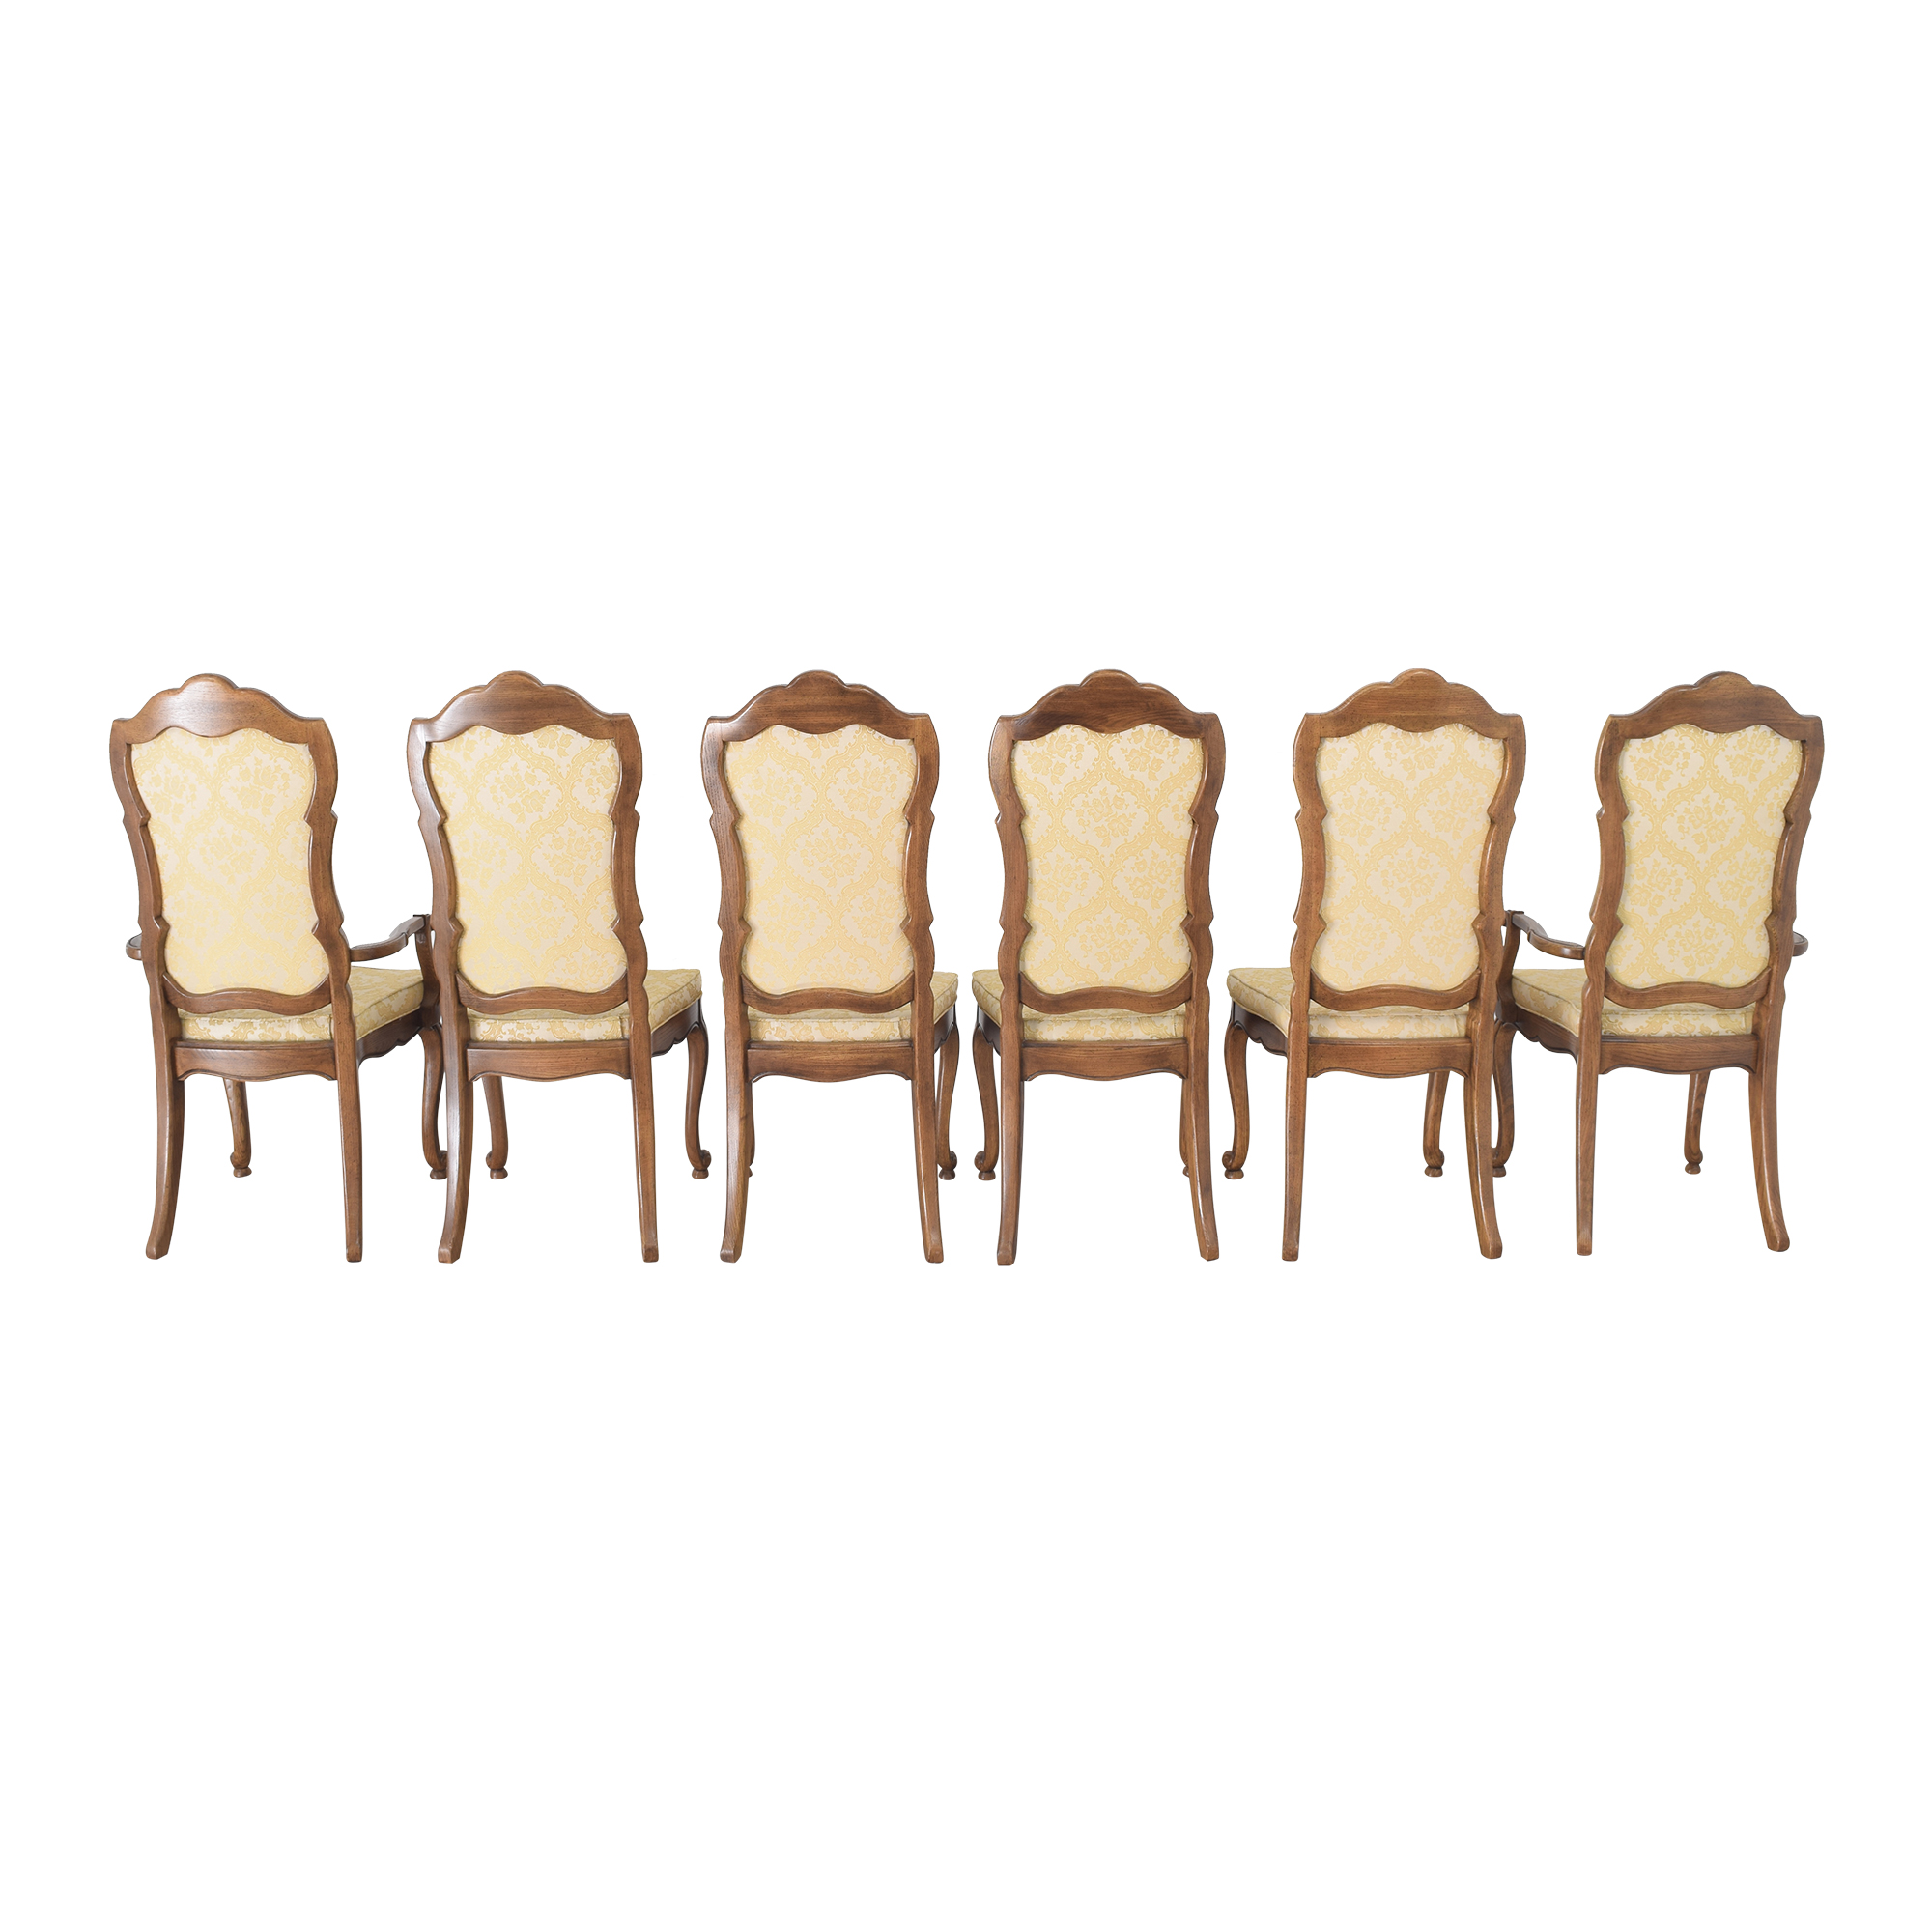 Thomasville Thomasville Upholstered Dining Chairs ma